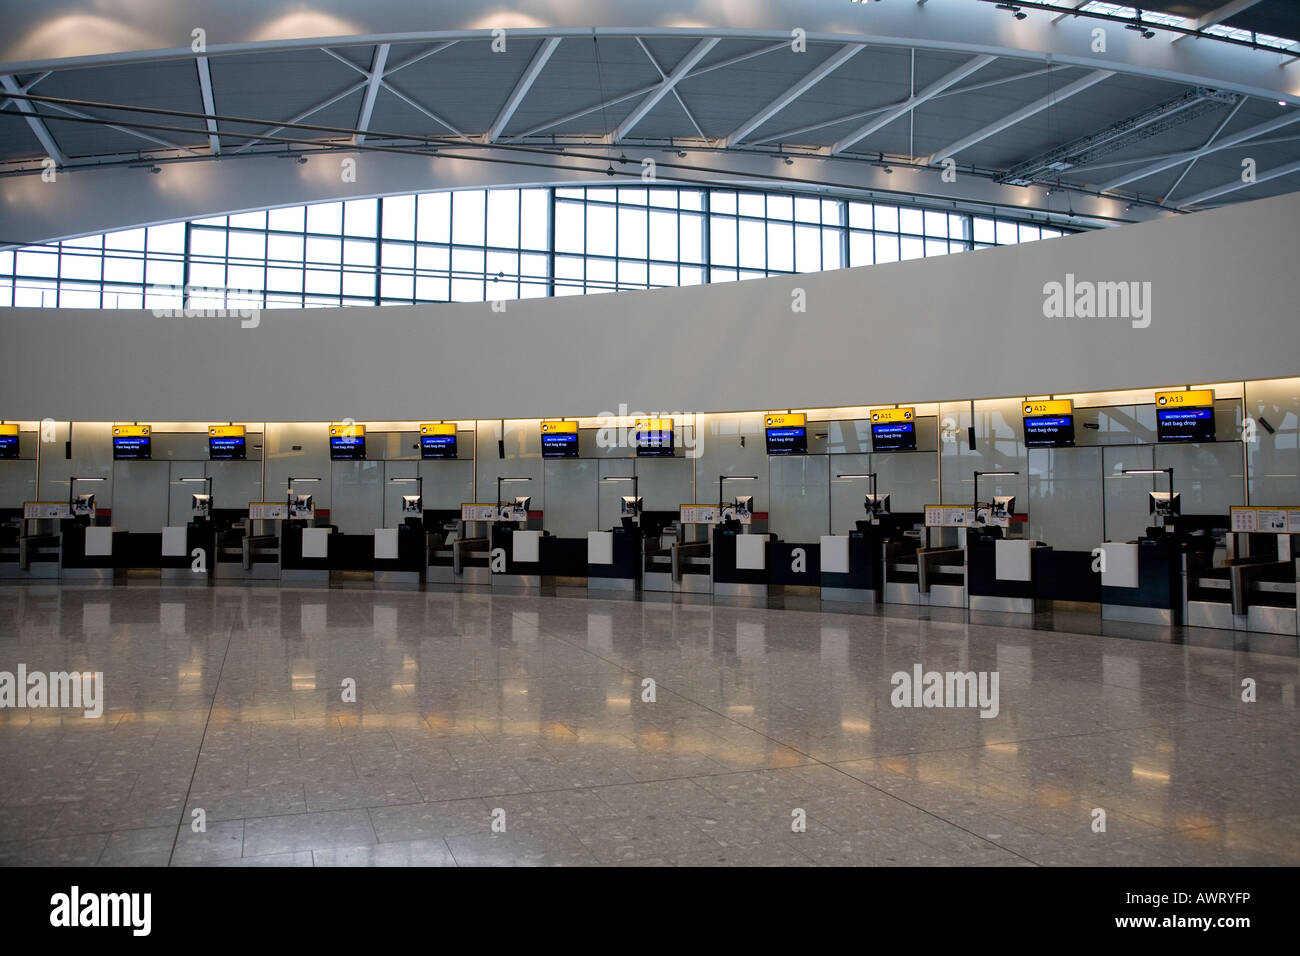 London Heathrow Airport, Terminal 5, London, England, UK - Stock Image